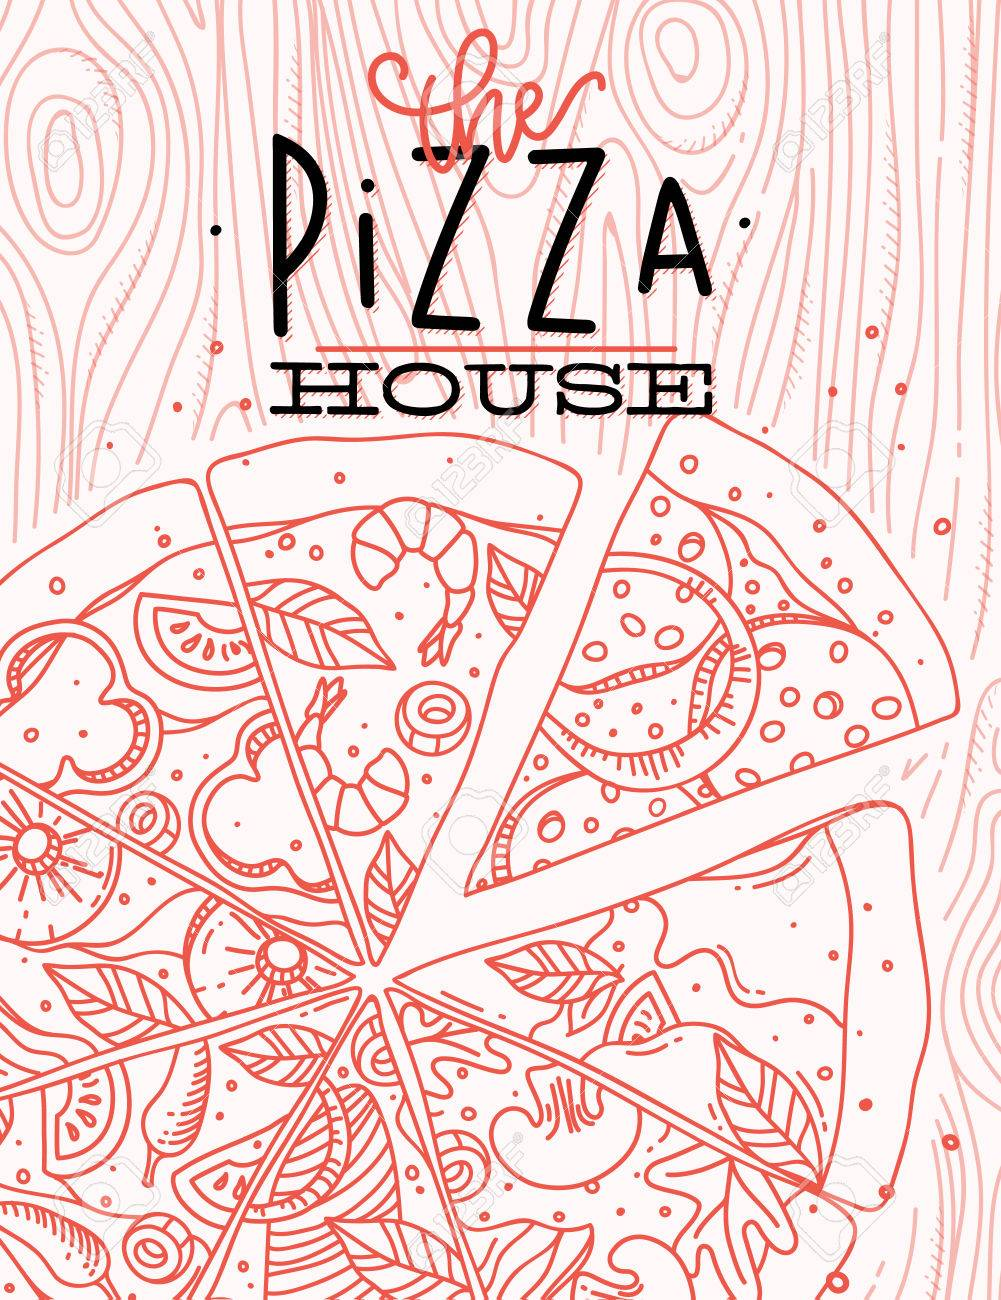 Poster Lettering The Pizza House Drawing With Coral Lines On ... on web design lines, clip art lines, white design lines, geometric design lines, background design lines, designs using lines, designs of lines, graphic water wavy lines, art design lines, layout design lines, graphic arts, graphic lines bars, fashion design lines, 2d design lines, graphic designs swirls, packaging design lines, simple design lines, logo design lines, bold design lines, classic design lines,